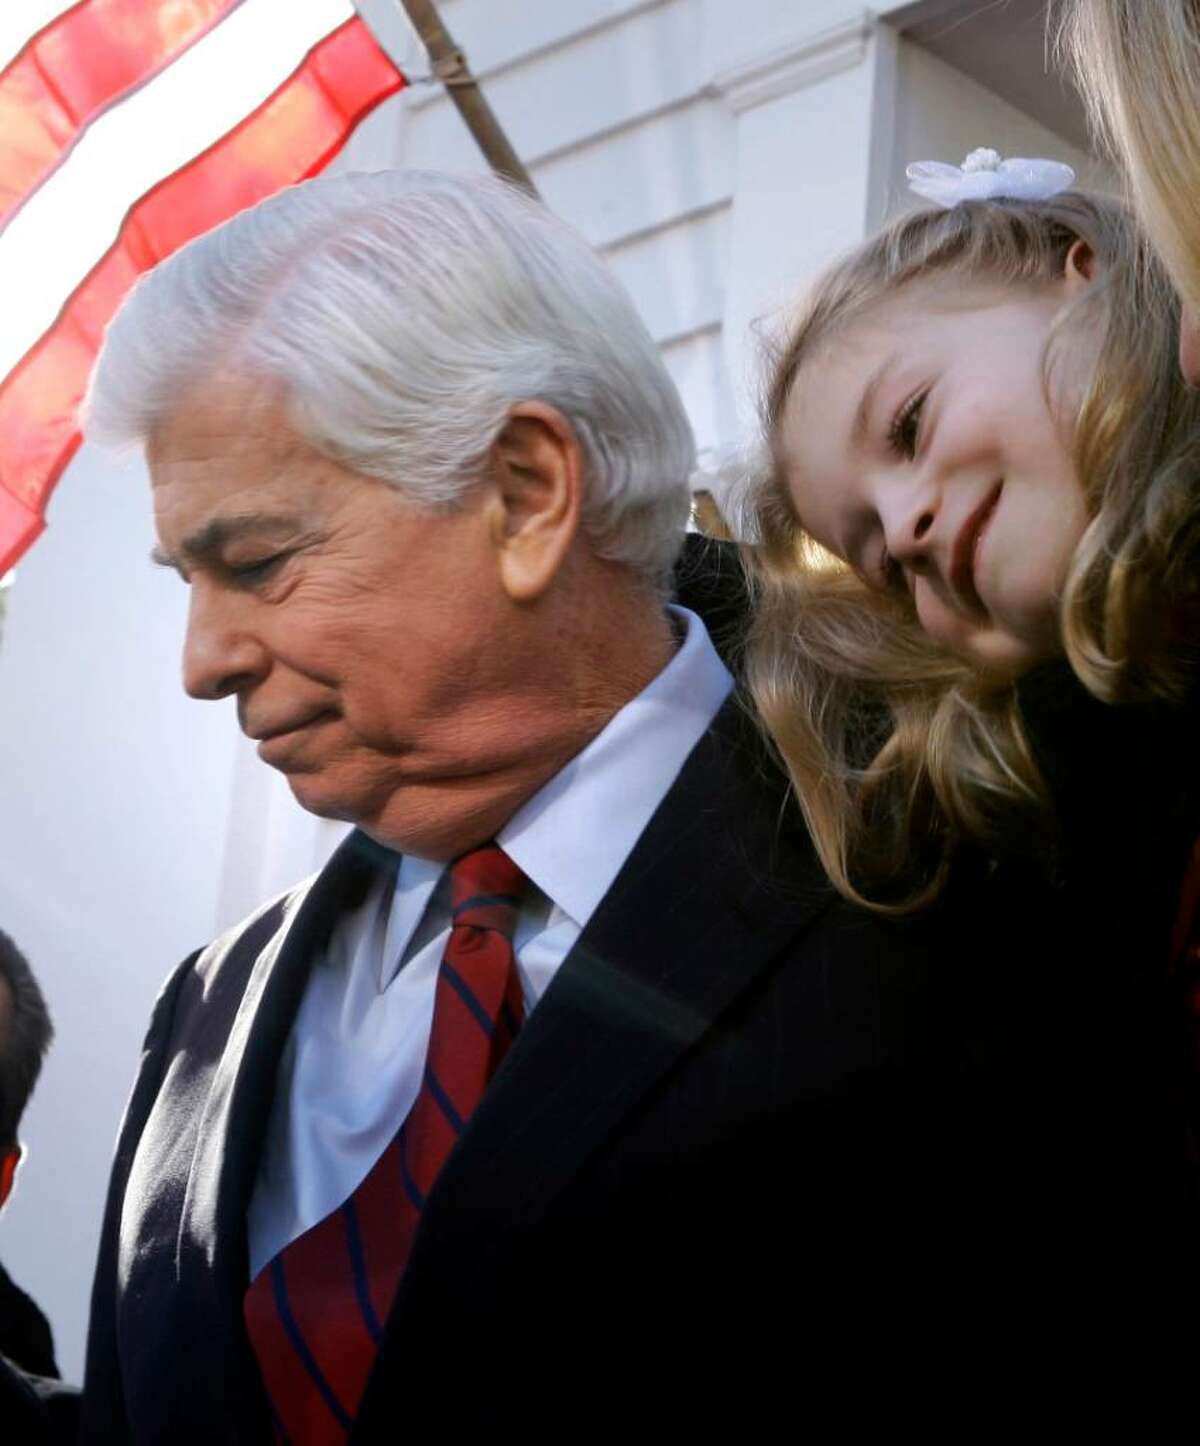 Christina Dodd rests her head on the shoulders of her dad, U.S. Sen. Christopher Dodd, D-CT, after he announced that he will retire after his current term outside his home in East Haddam, Conn., Wednesday Jan. 6, 2010. Dodd, who served five terms, is chairman of the Senate Banking Committee and made an unsuccessful bid for the presidency in 2008. (AP Photo/Charles Krupa)